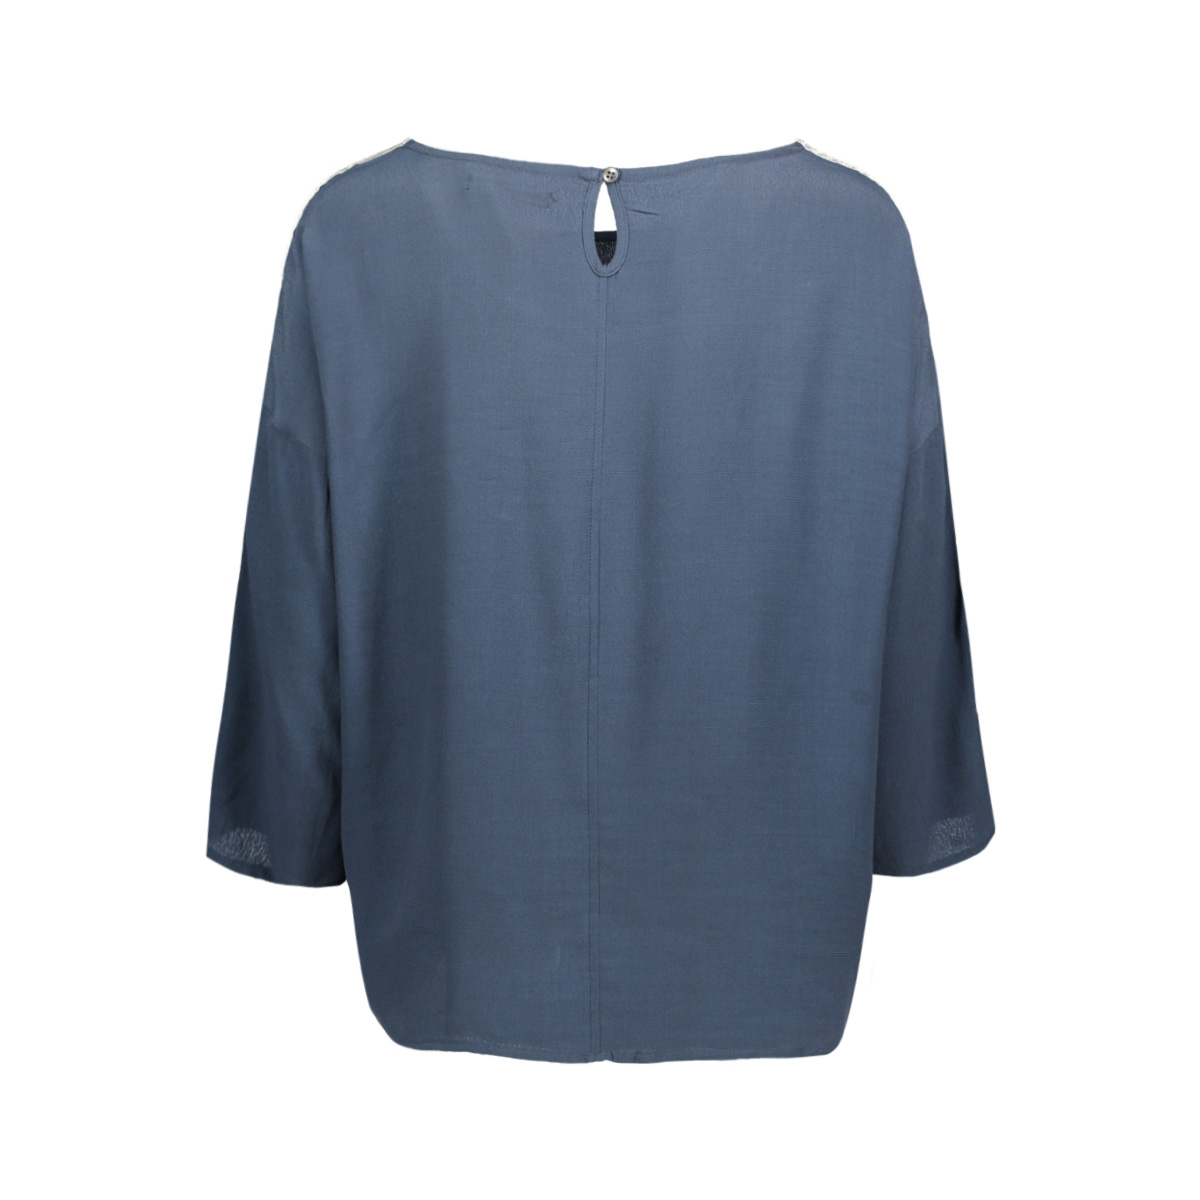 w17.46.5635 cali tee circle of trust blouse navy